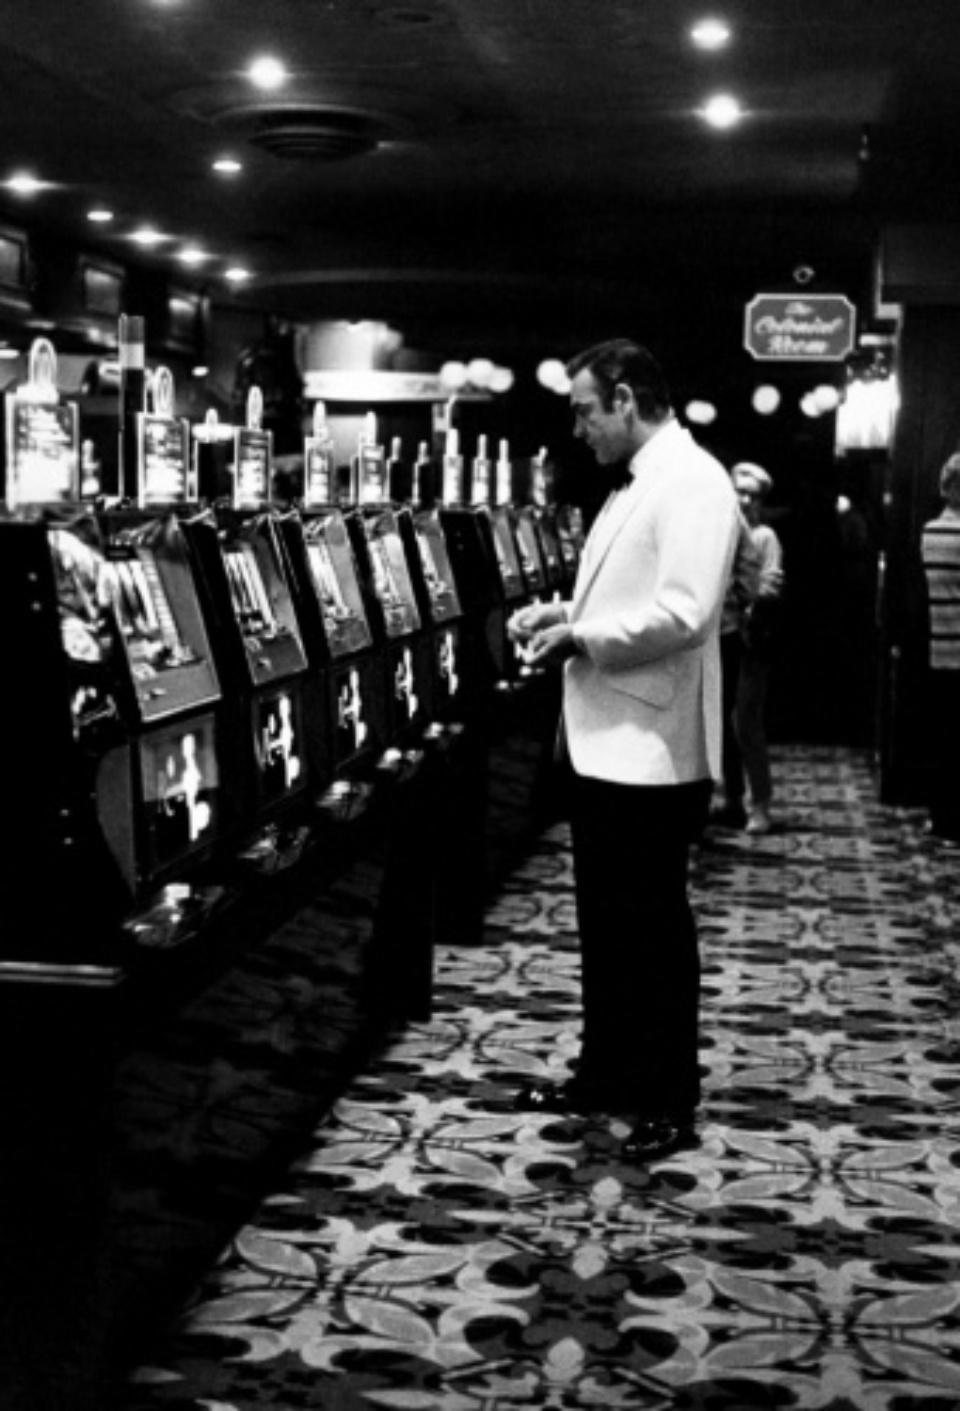 Terry O'Neill: Sean Connery at the Slots Las Vegas, 1971 Gelatin silver print, printed later Signed on recto Signed and numbered on verso 40 x 50 cm Editioned